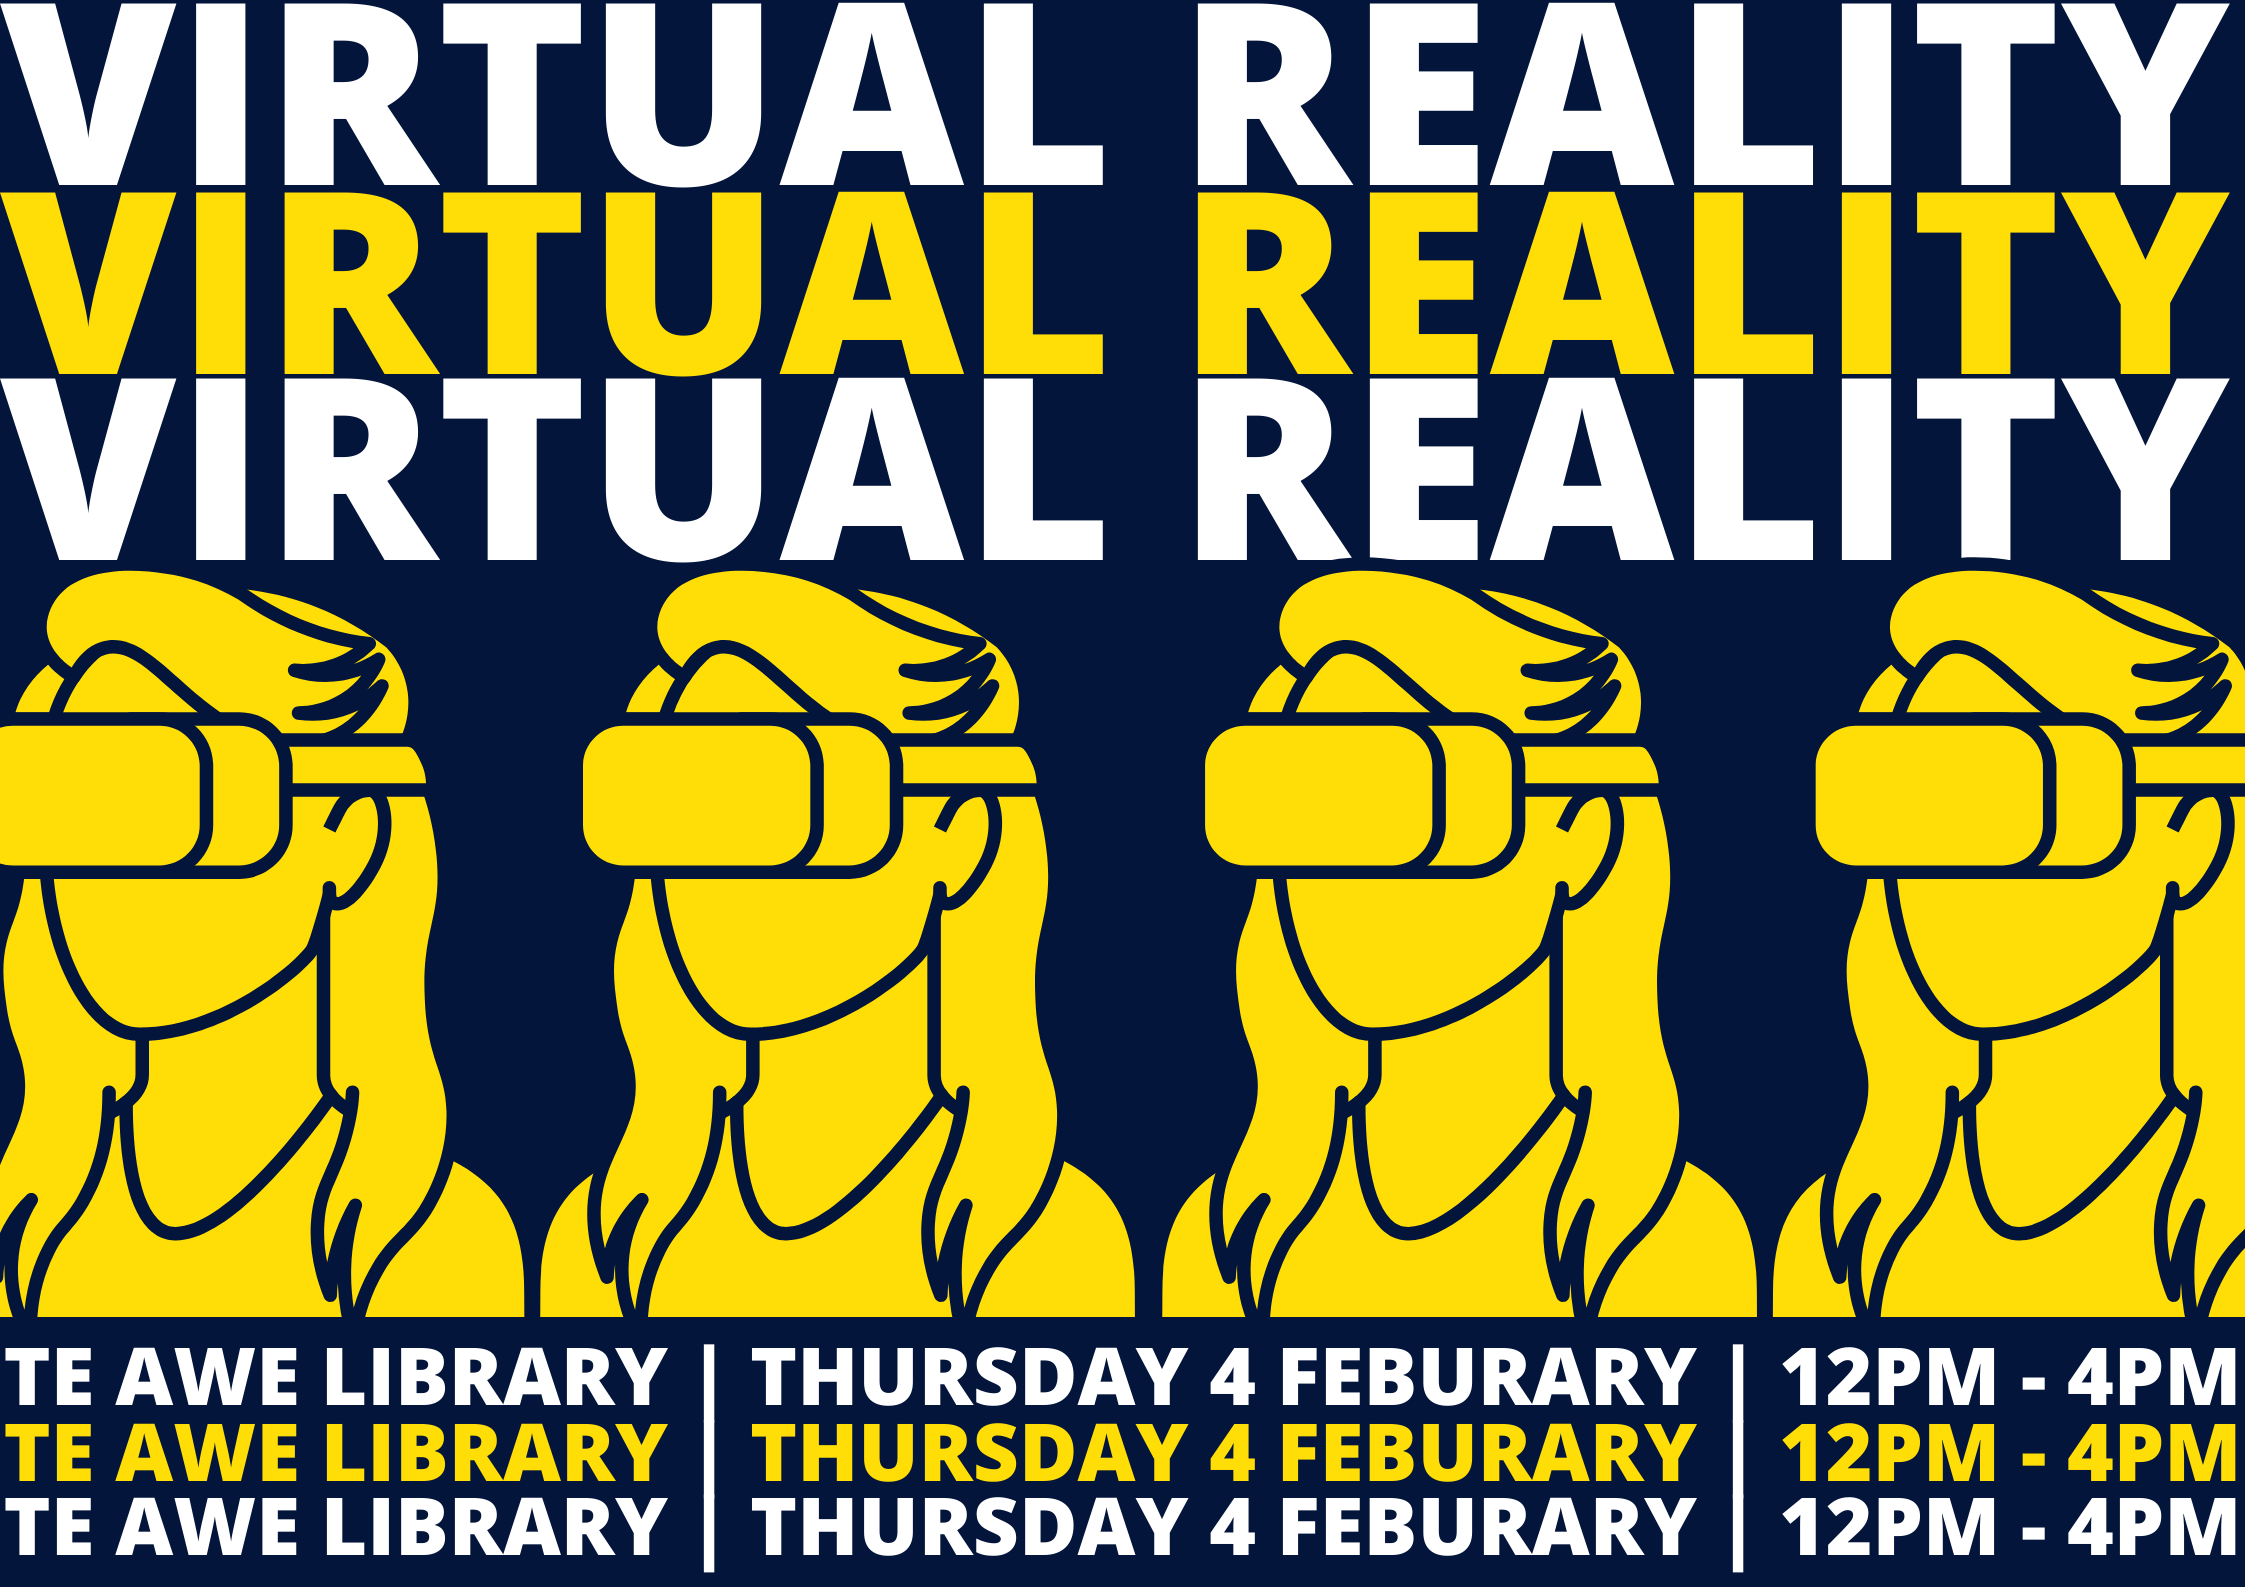 Facebook event for VR at Te Awe